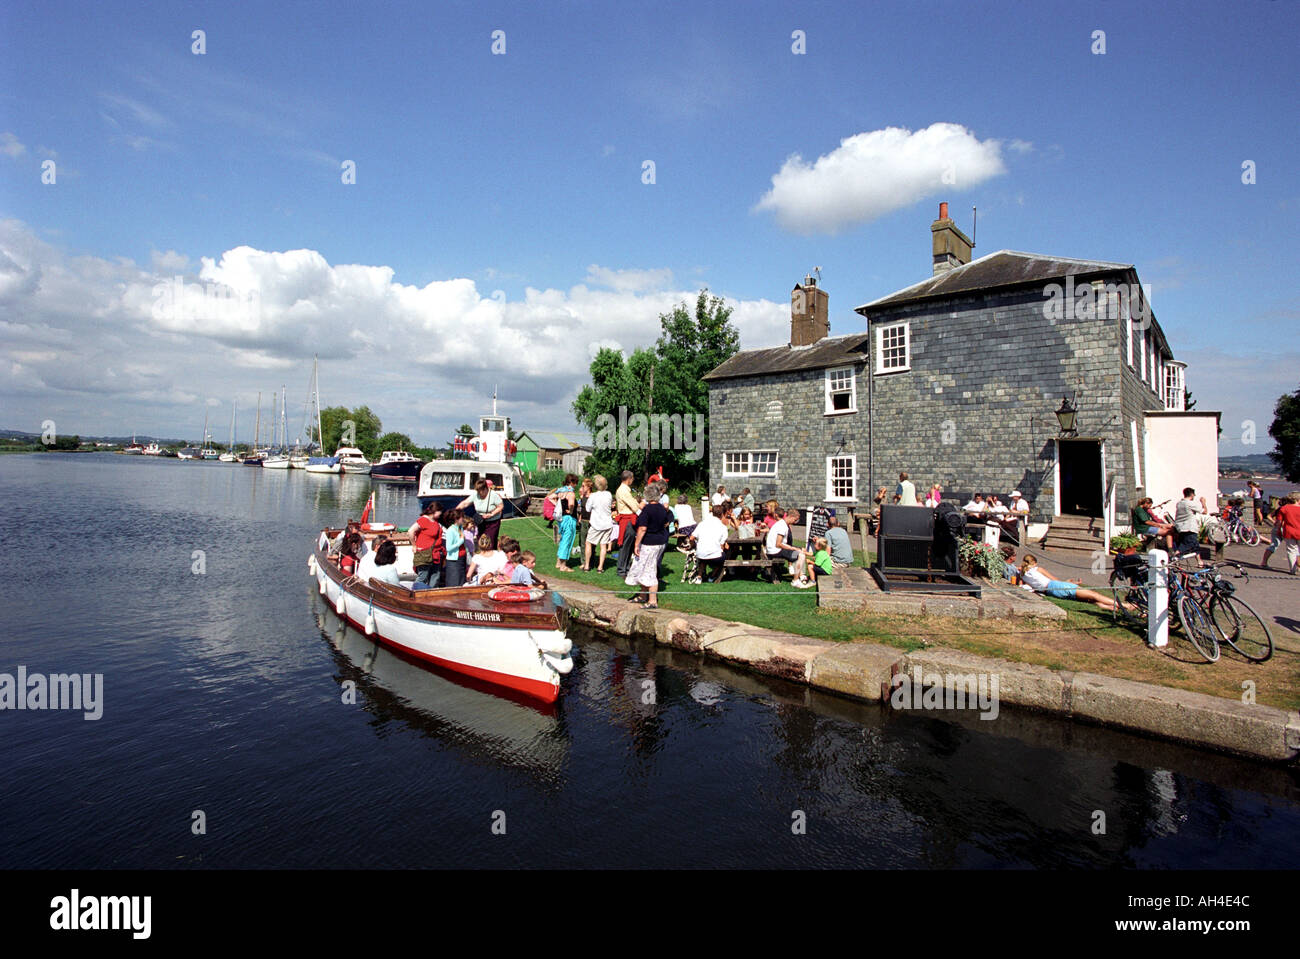 The Turf Locks pub on the Exeter Canal in Devon England UK